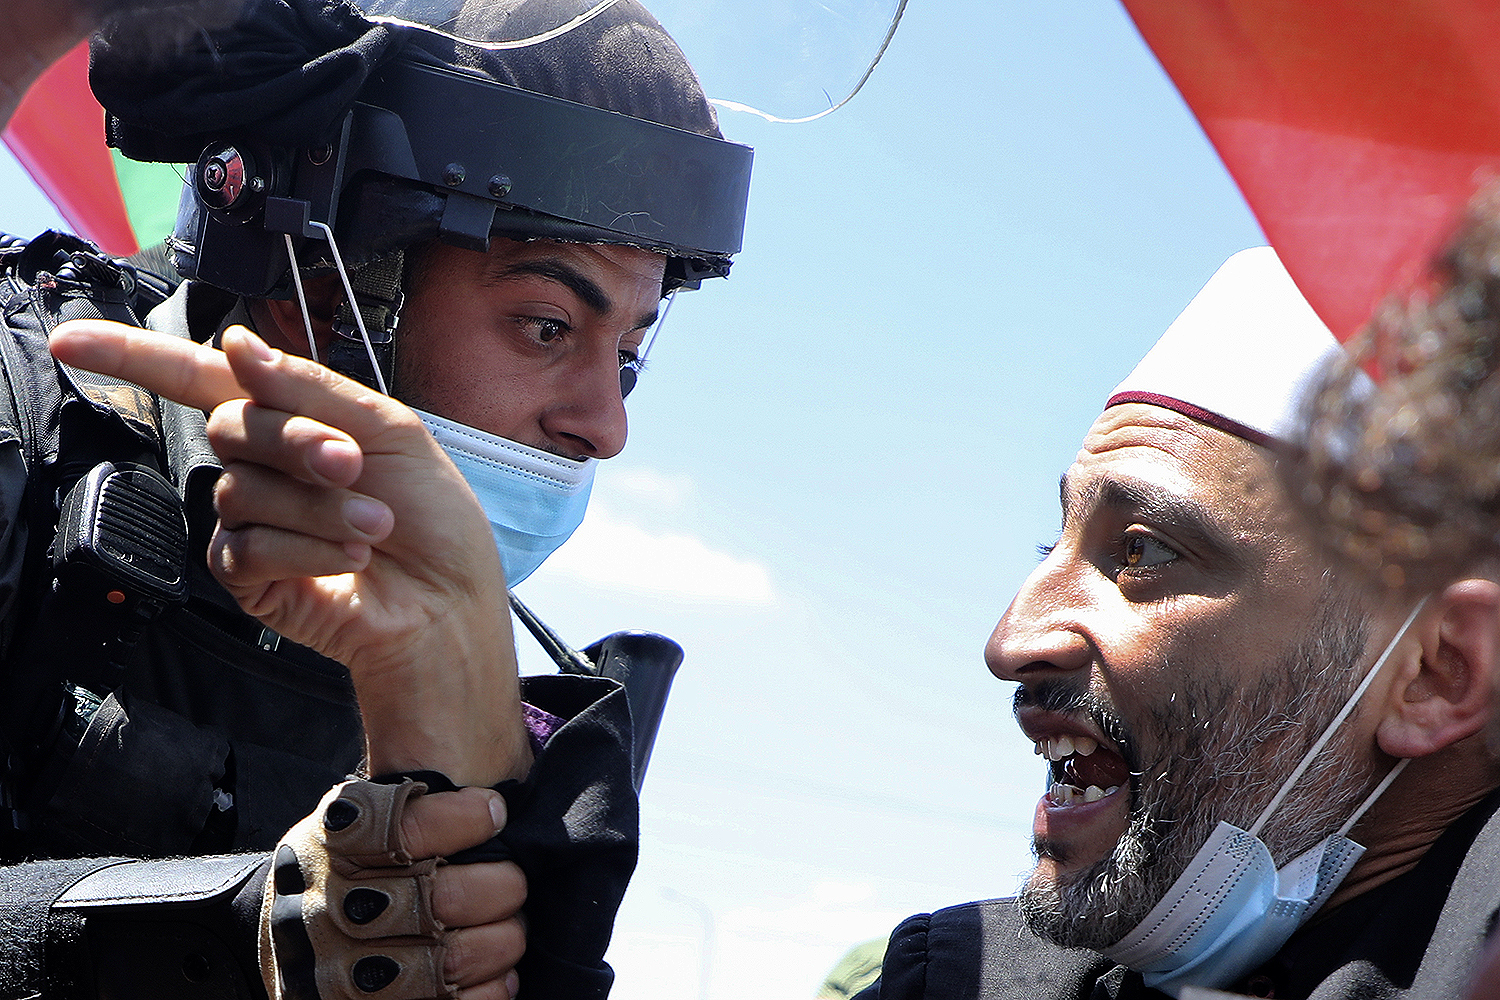 A Palestinian demonstrator argues with Israeli security forces in the West Bank village of Haris, southwest of Nablus, on Aug. 21 during a rally to protest against Israel's plan to annex parts of the occupied West Bank. JAAFAR ASHTIYEH/AFP via Getty Images